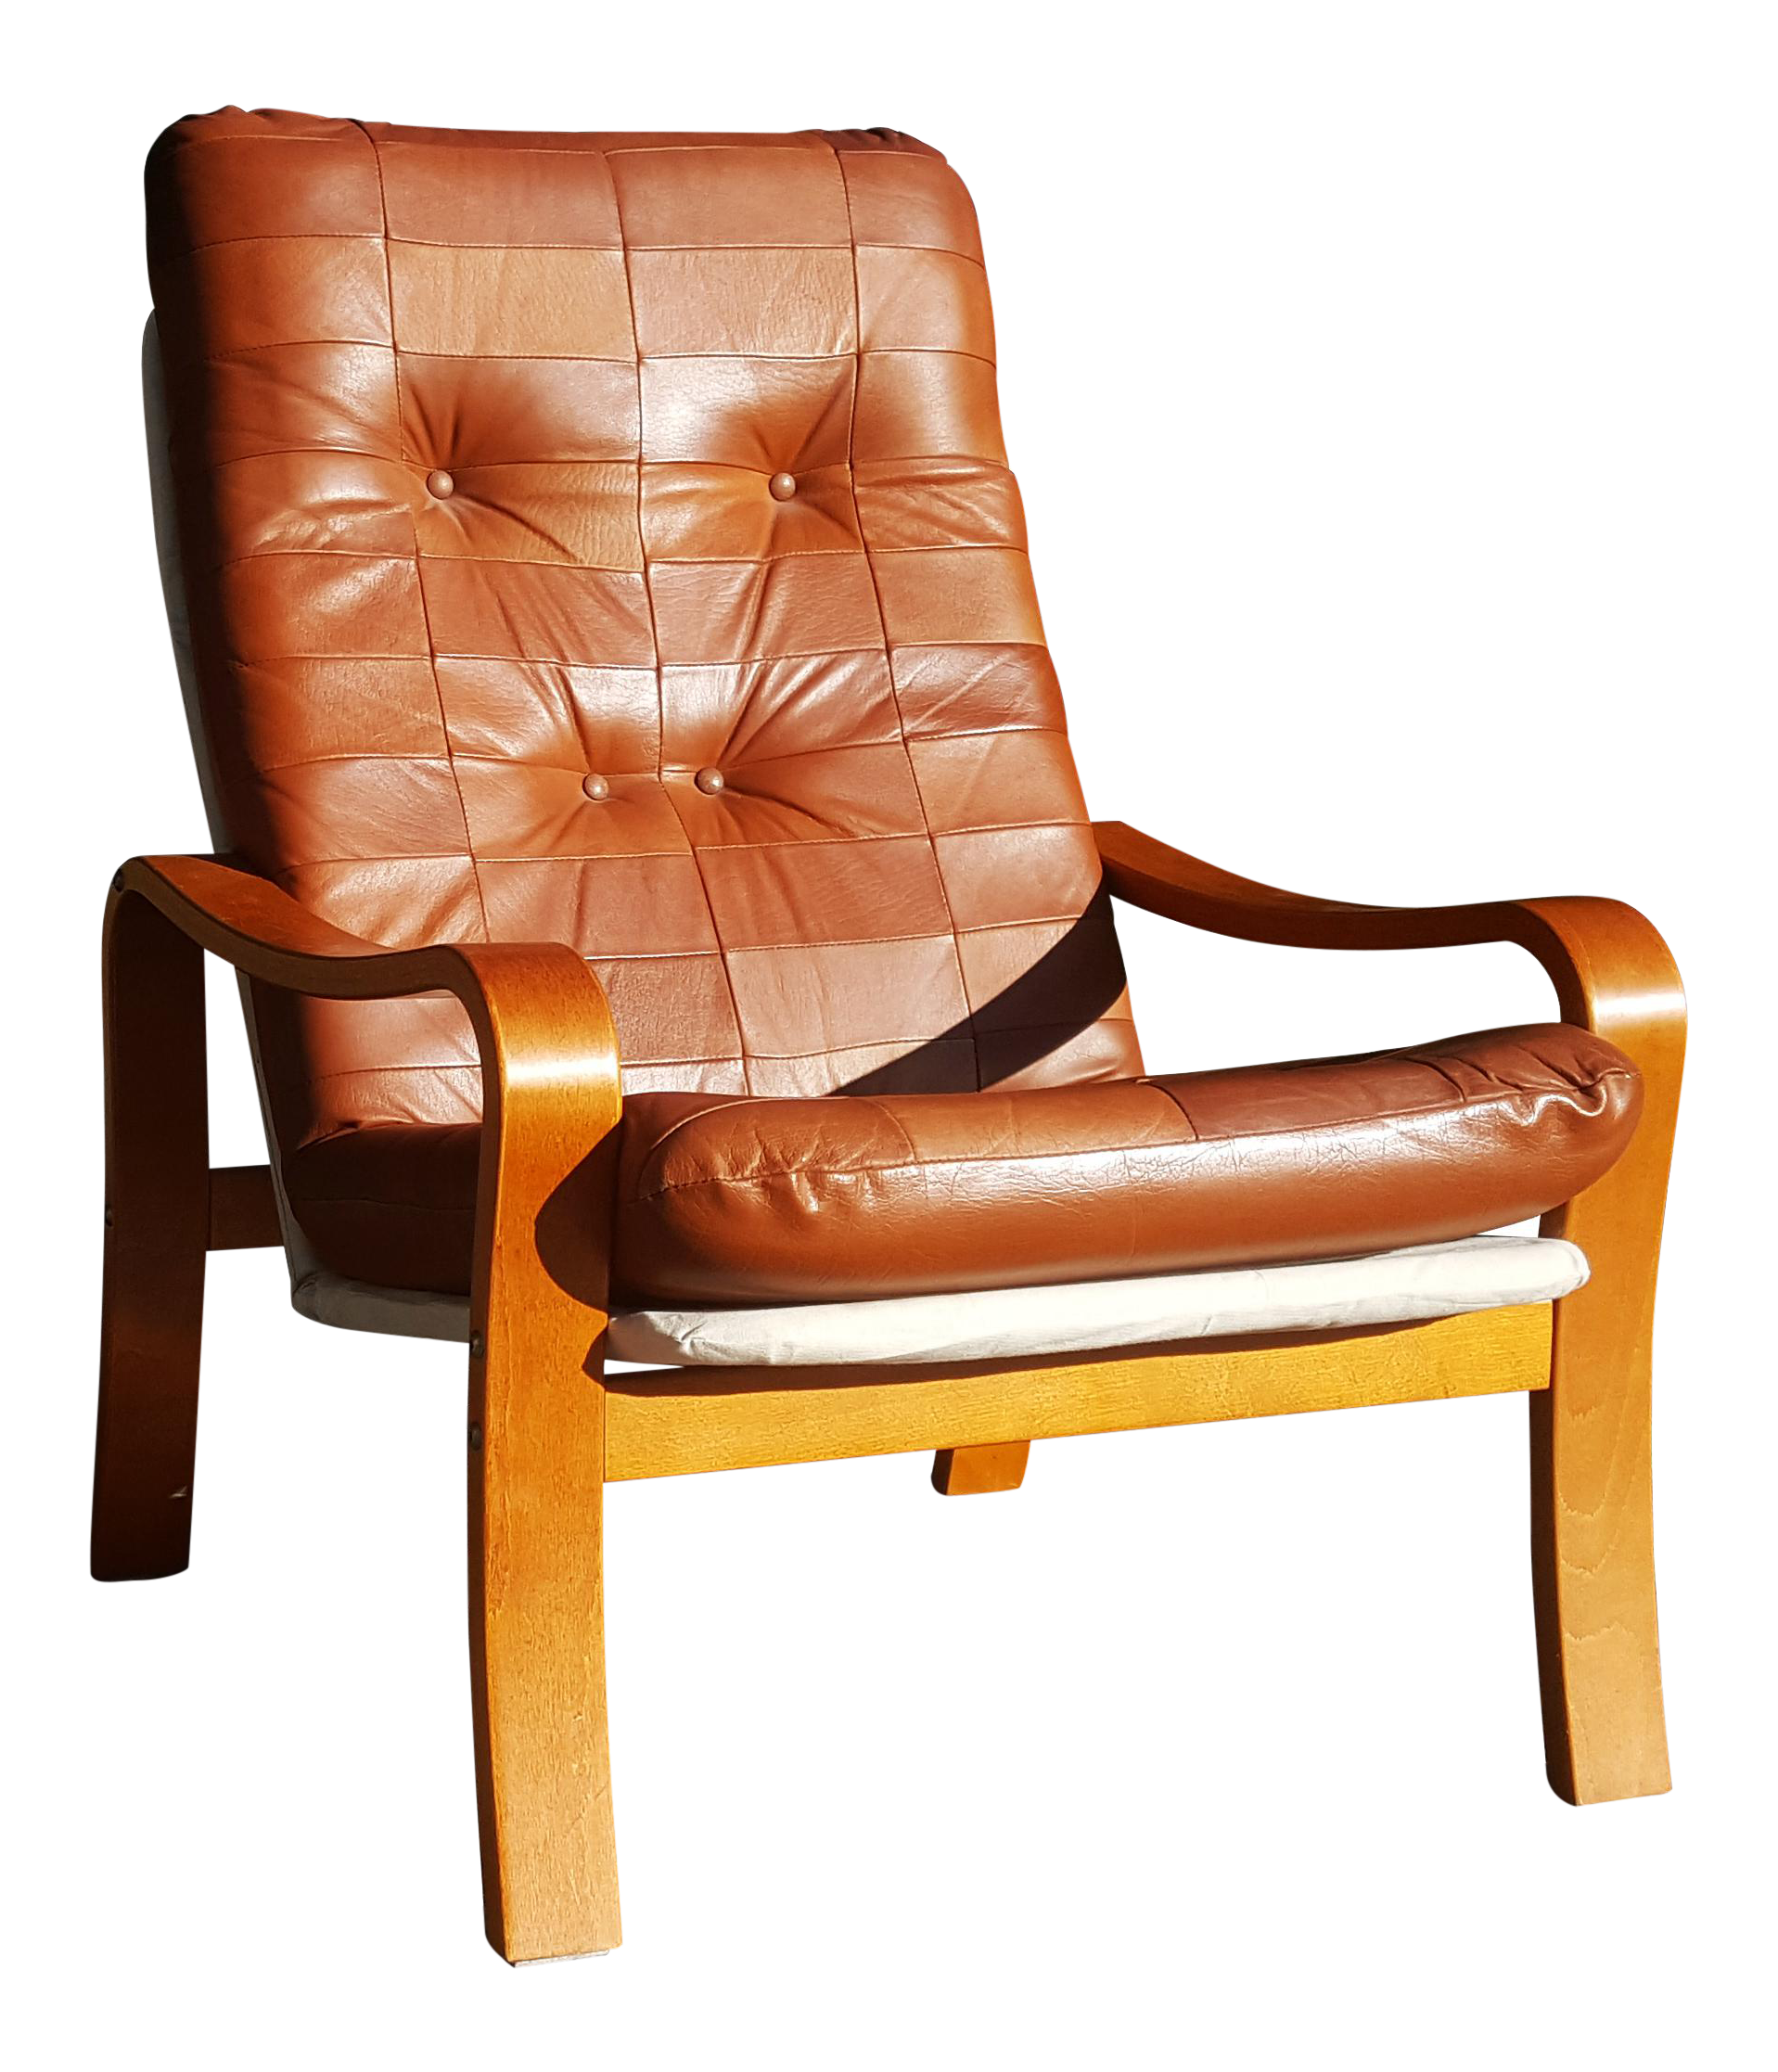 Wondrous Mid Century Modern Swedish Plywood And Leather Patchwork Lounge Chair Andrewgaddart Wooden Chair Designs For Living Room Andrewgaddartcom